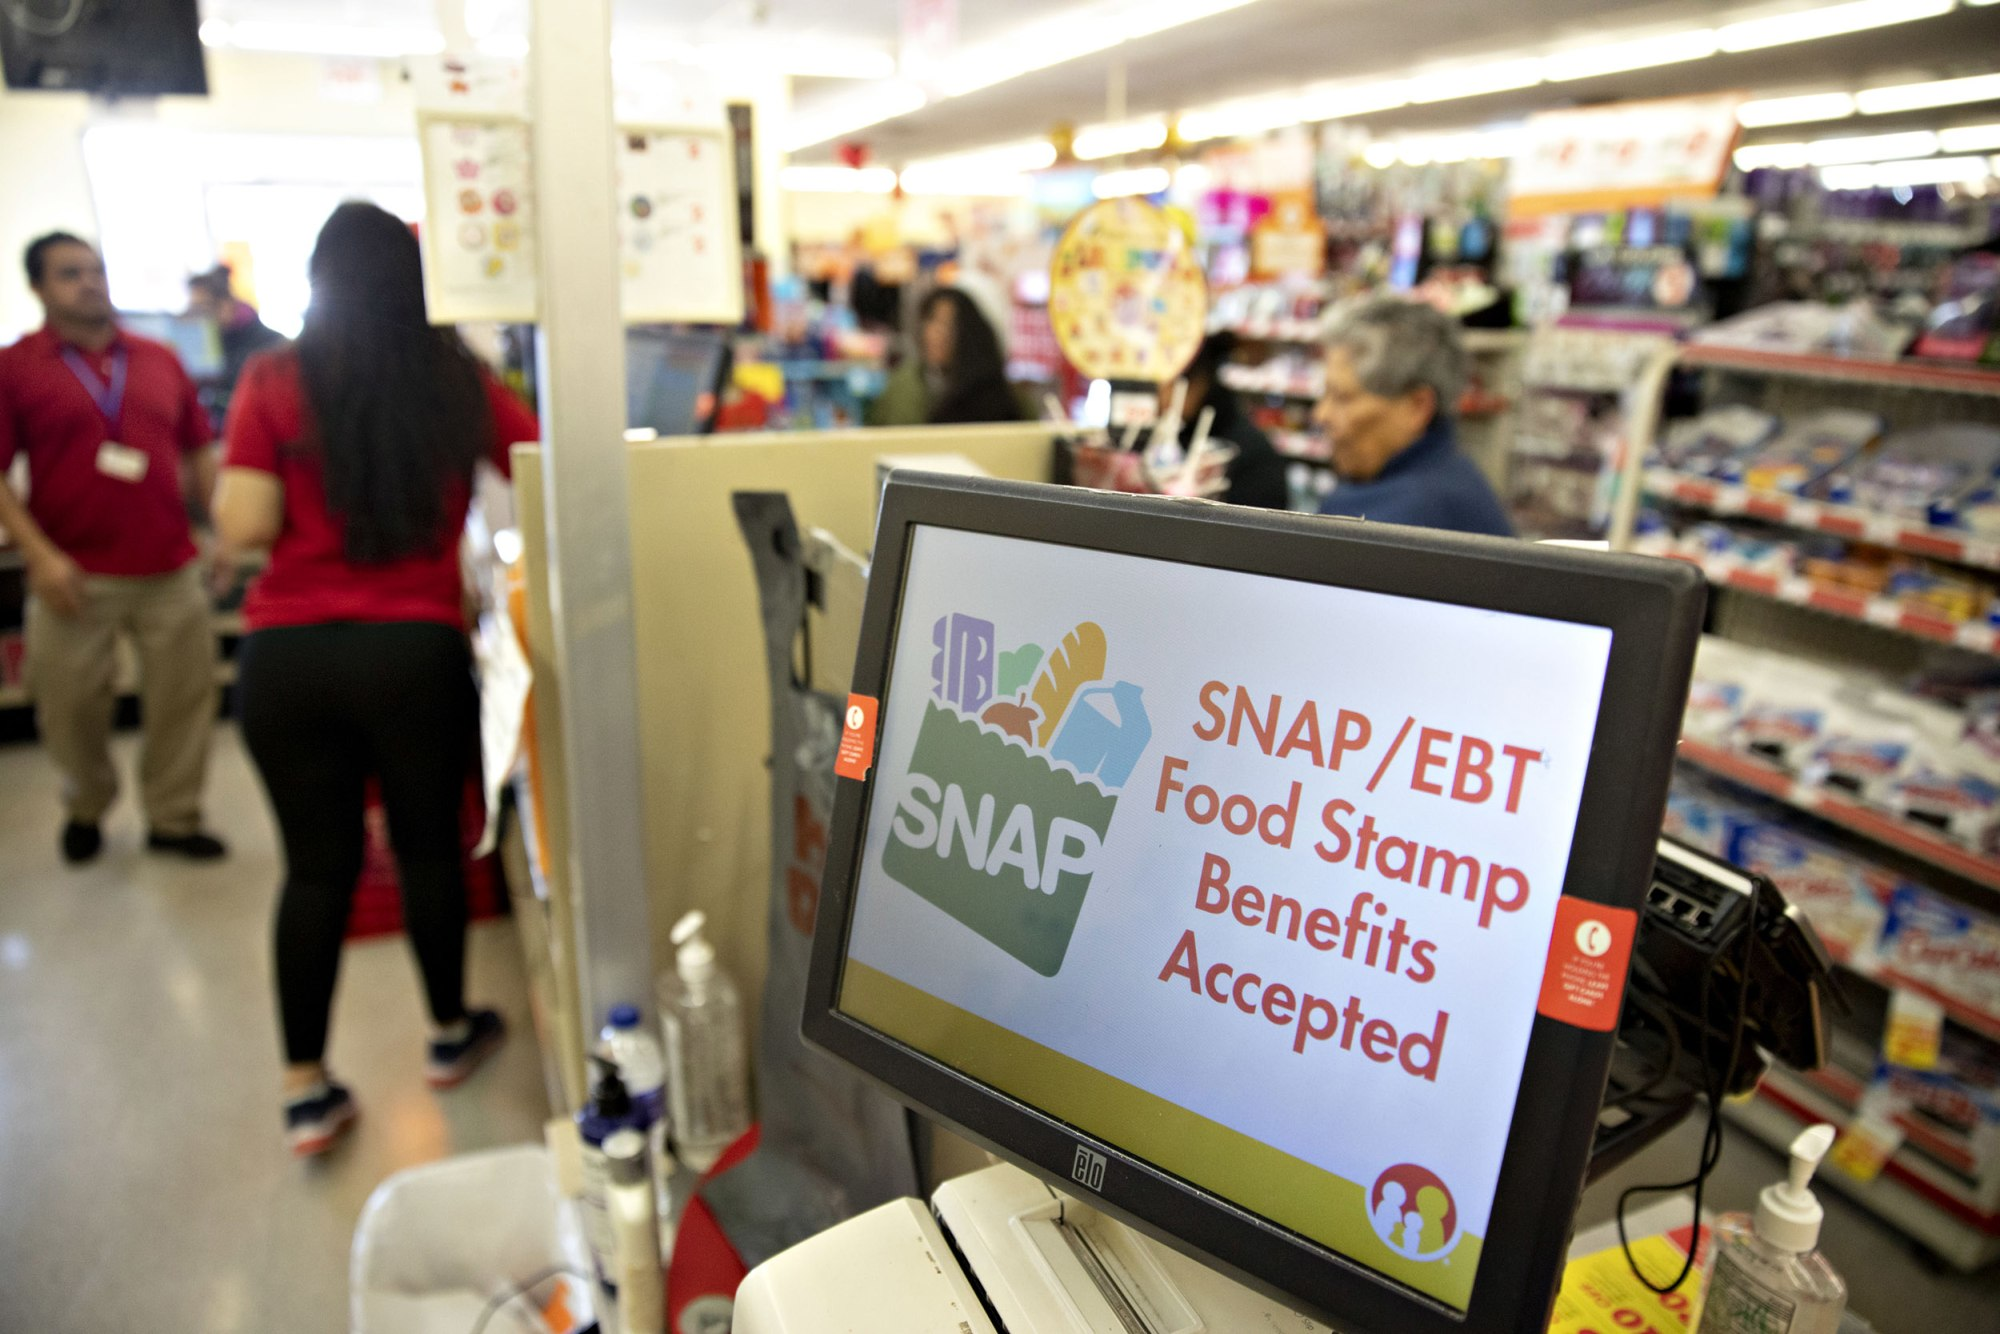 Federal judge halts Trump's proposed food stamp cutback for 700,000 Americans